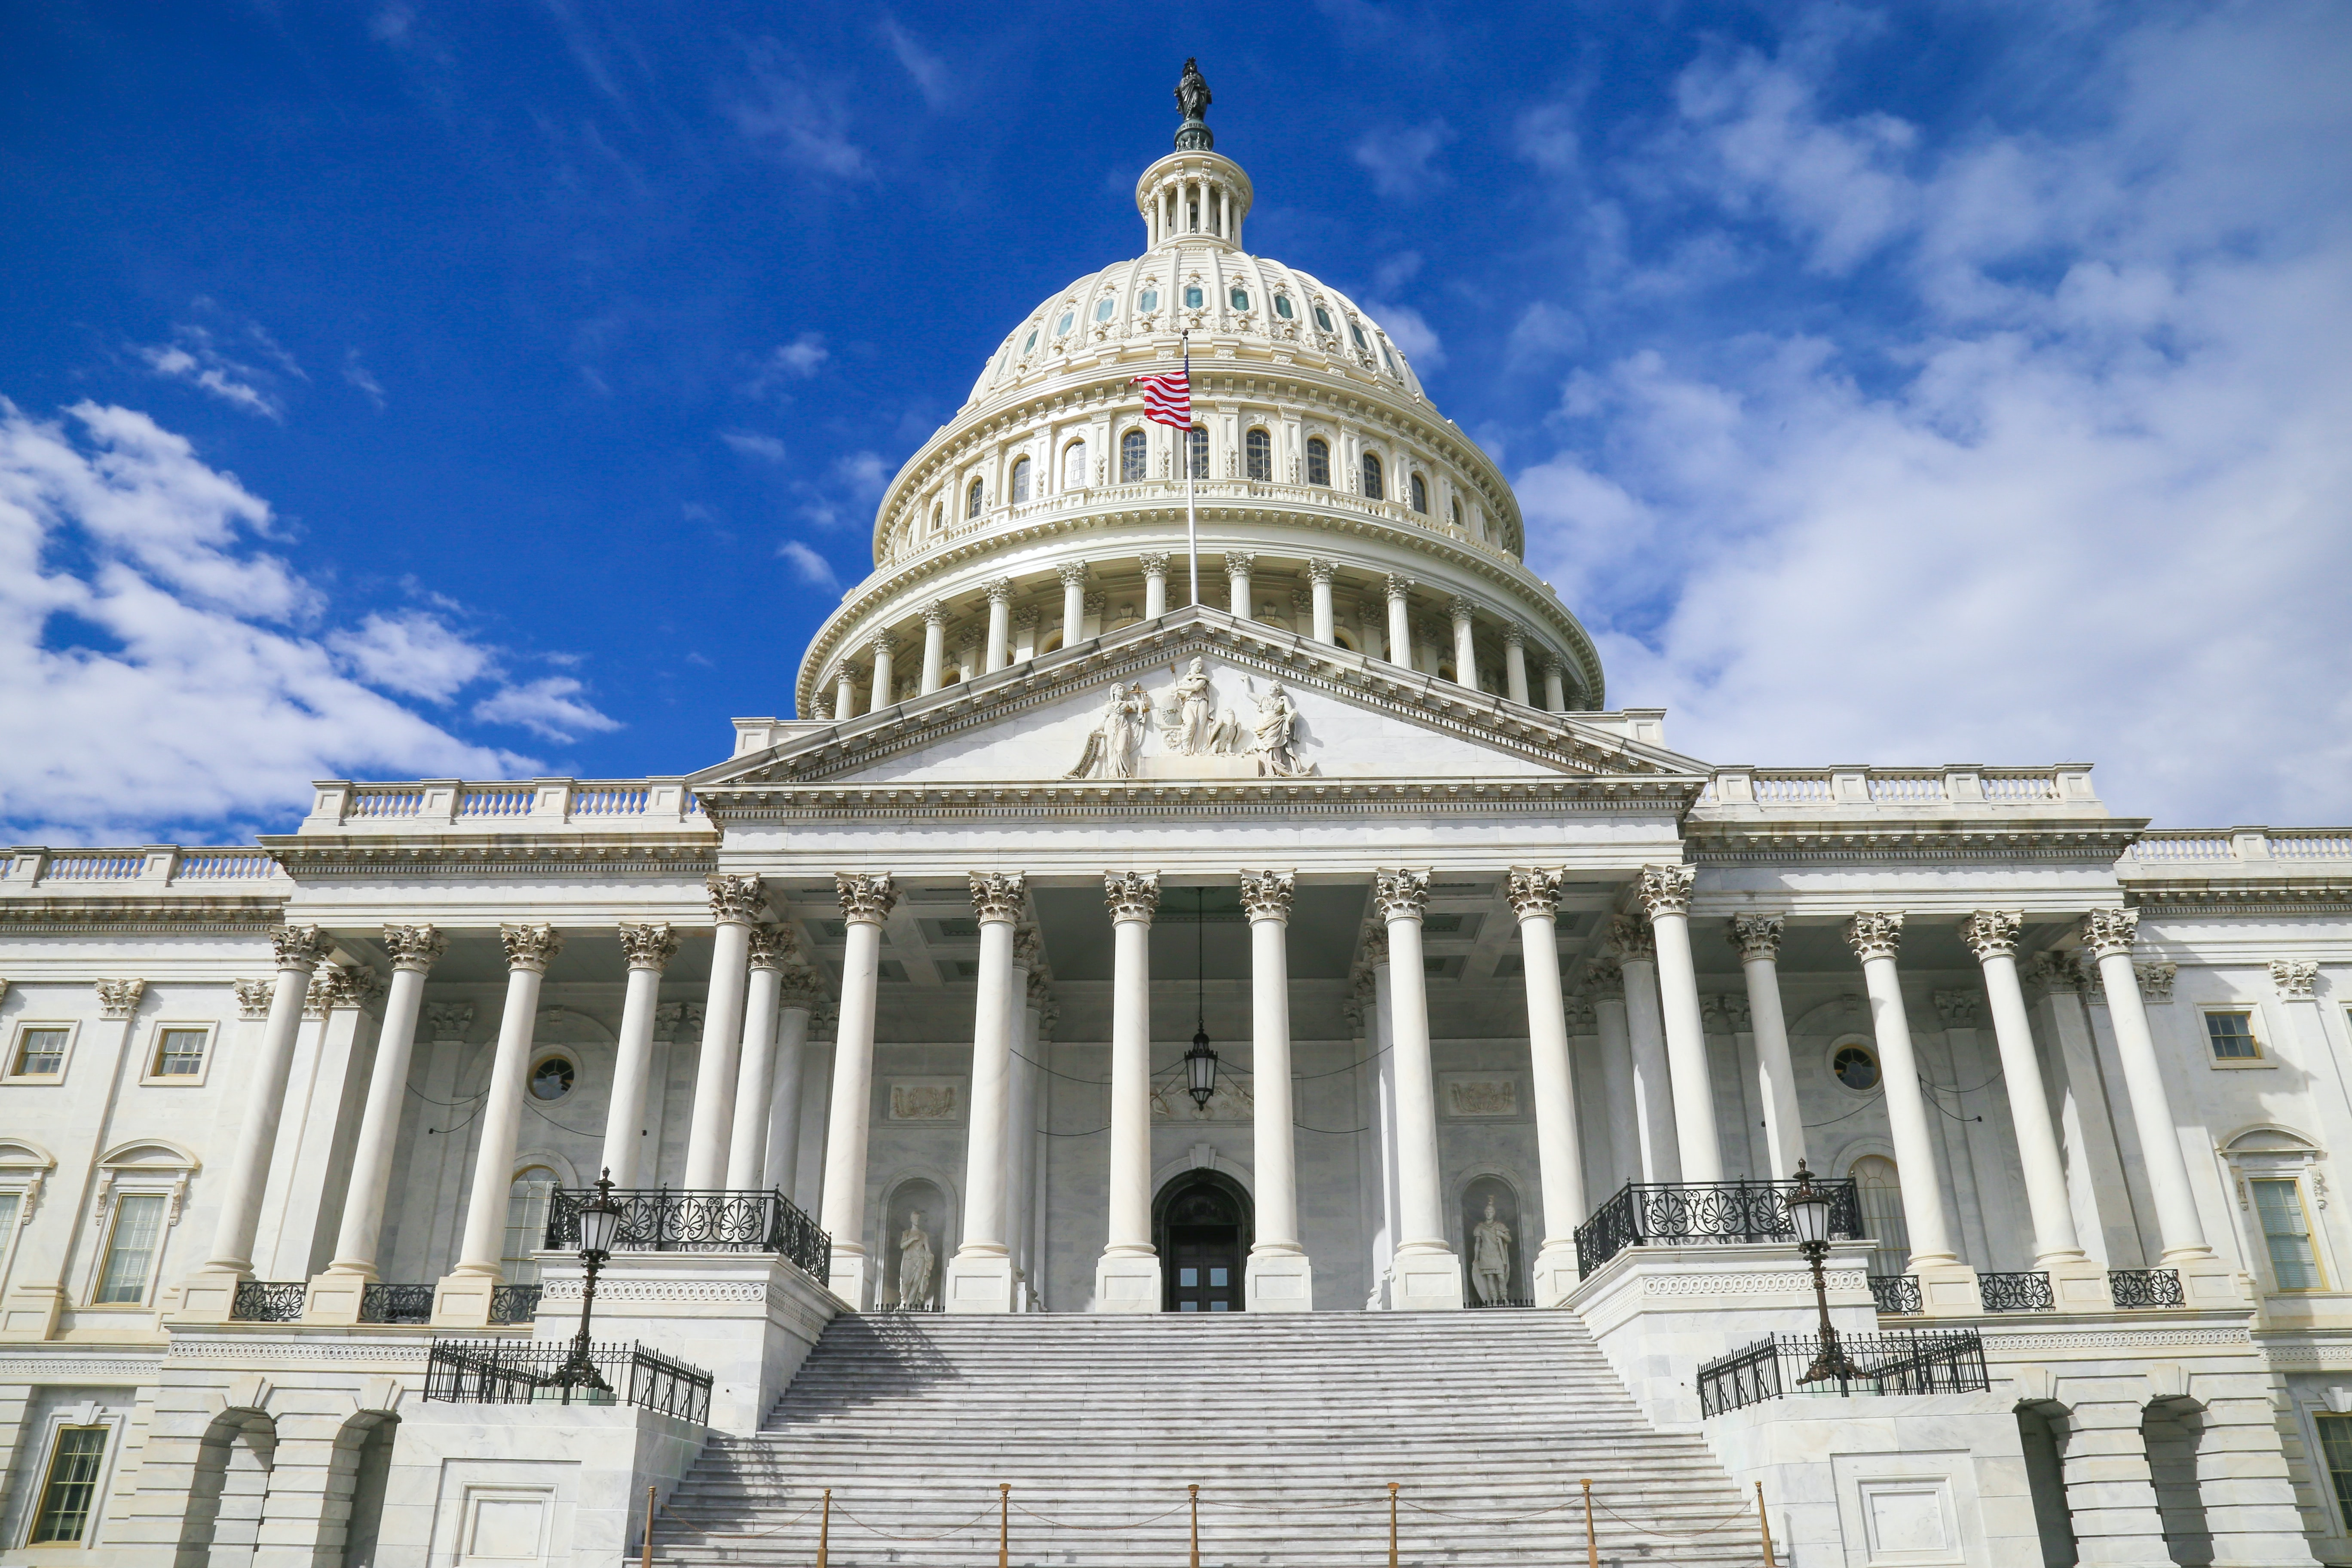 New administration in Washington – Does it matter?